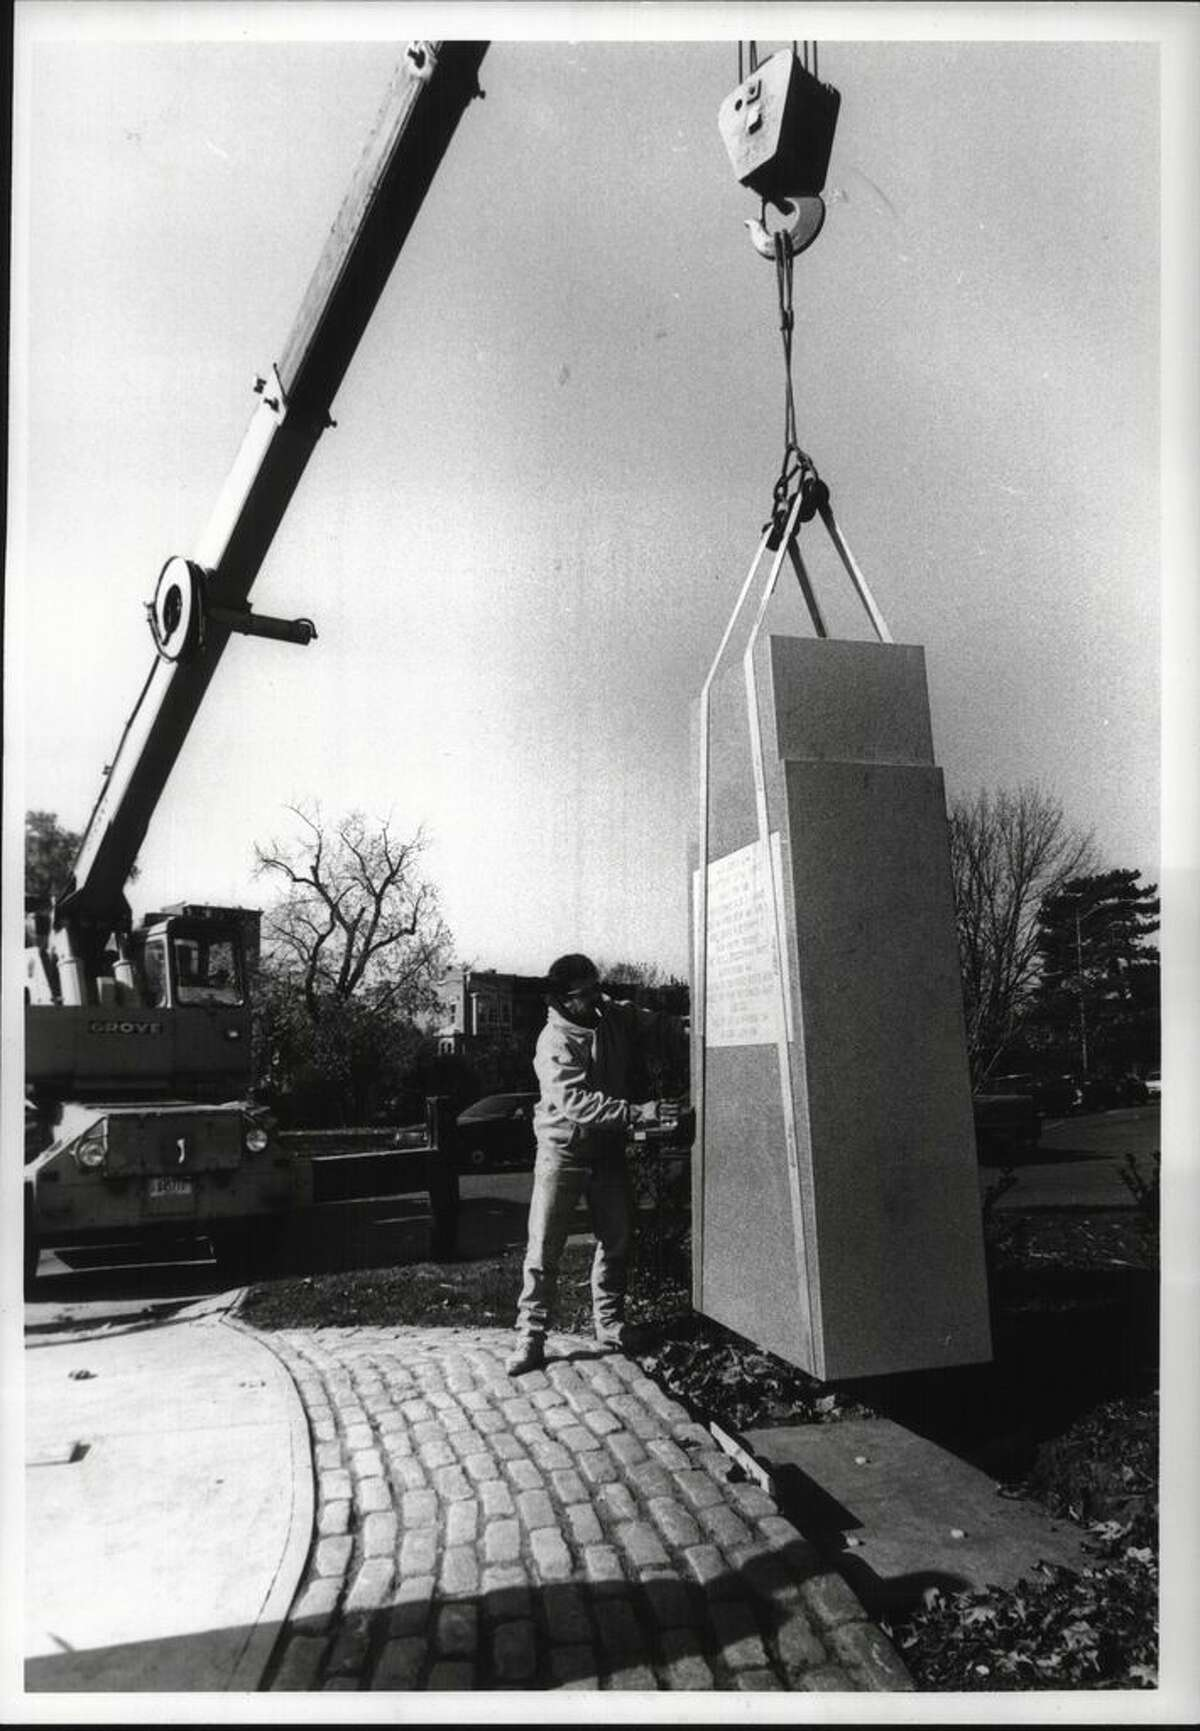 John Gadani, Albany Department of Public Works worker, guides a monument for Sgt. Henry Johnson into place in Washington Park on Oct. 30, 1991, at Willet Street and Madison Avenue. It was dedicated on Nov. 11 - Veterans Day. (Roberta Smith/Times Union)